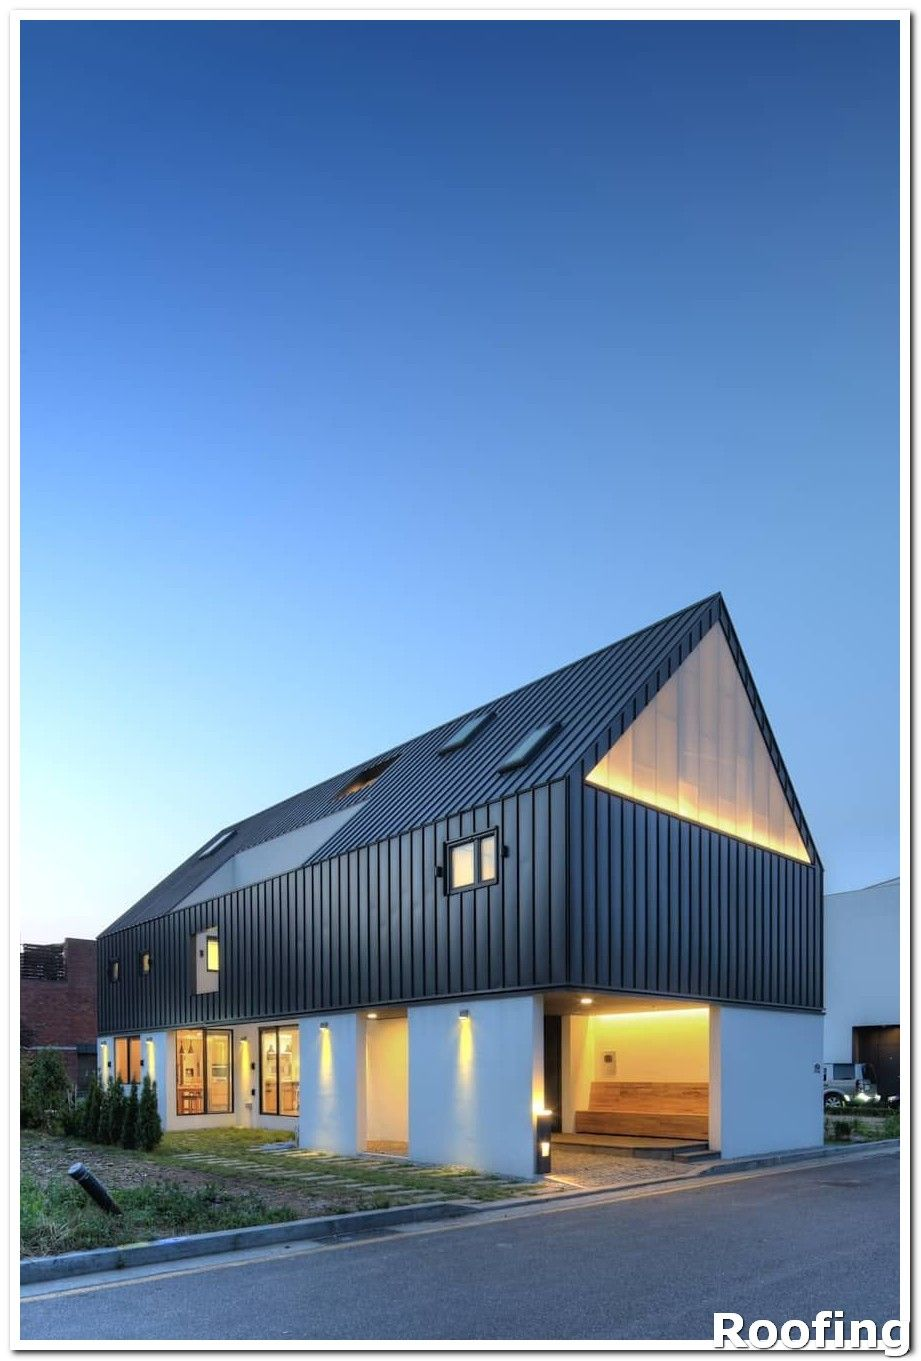 [Roofing Architecture] Choose a roofing contractor who is